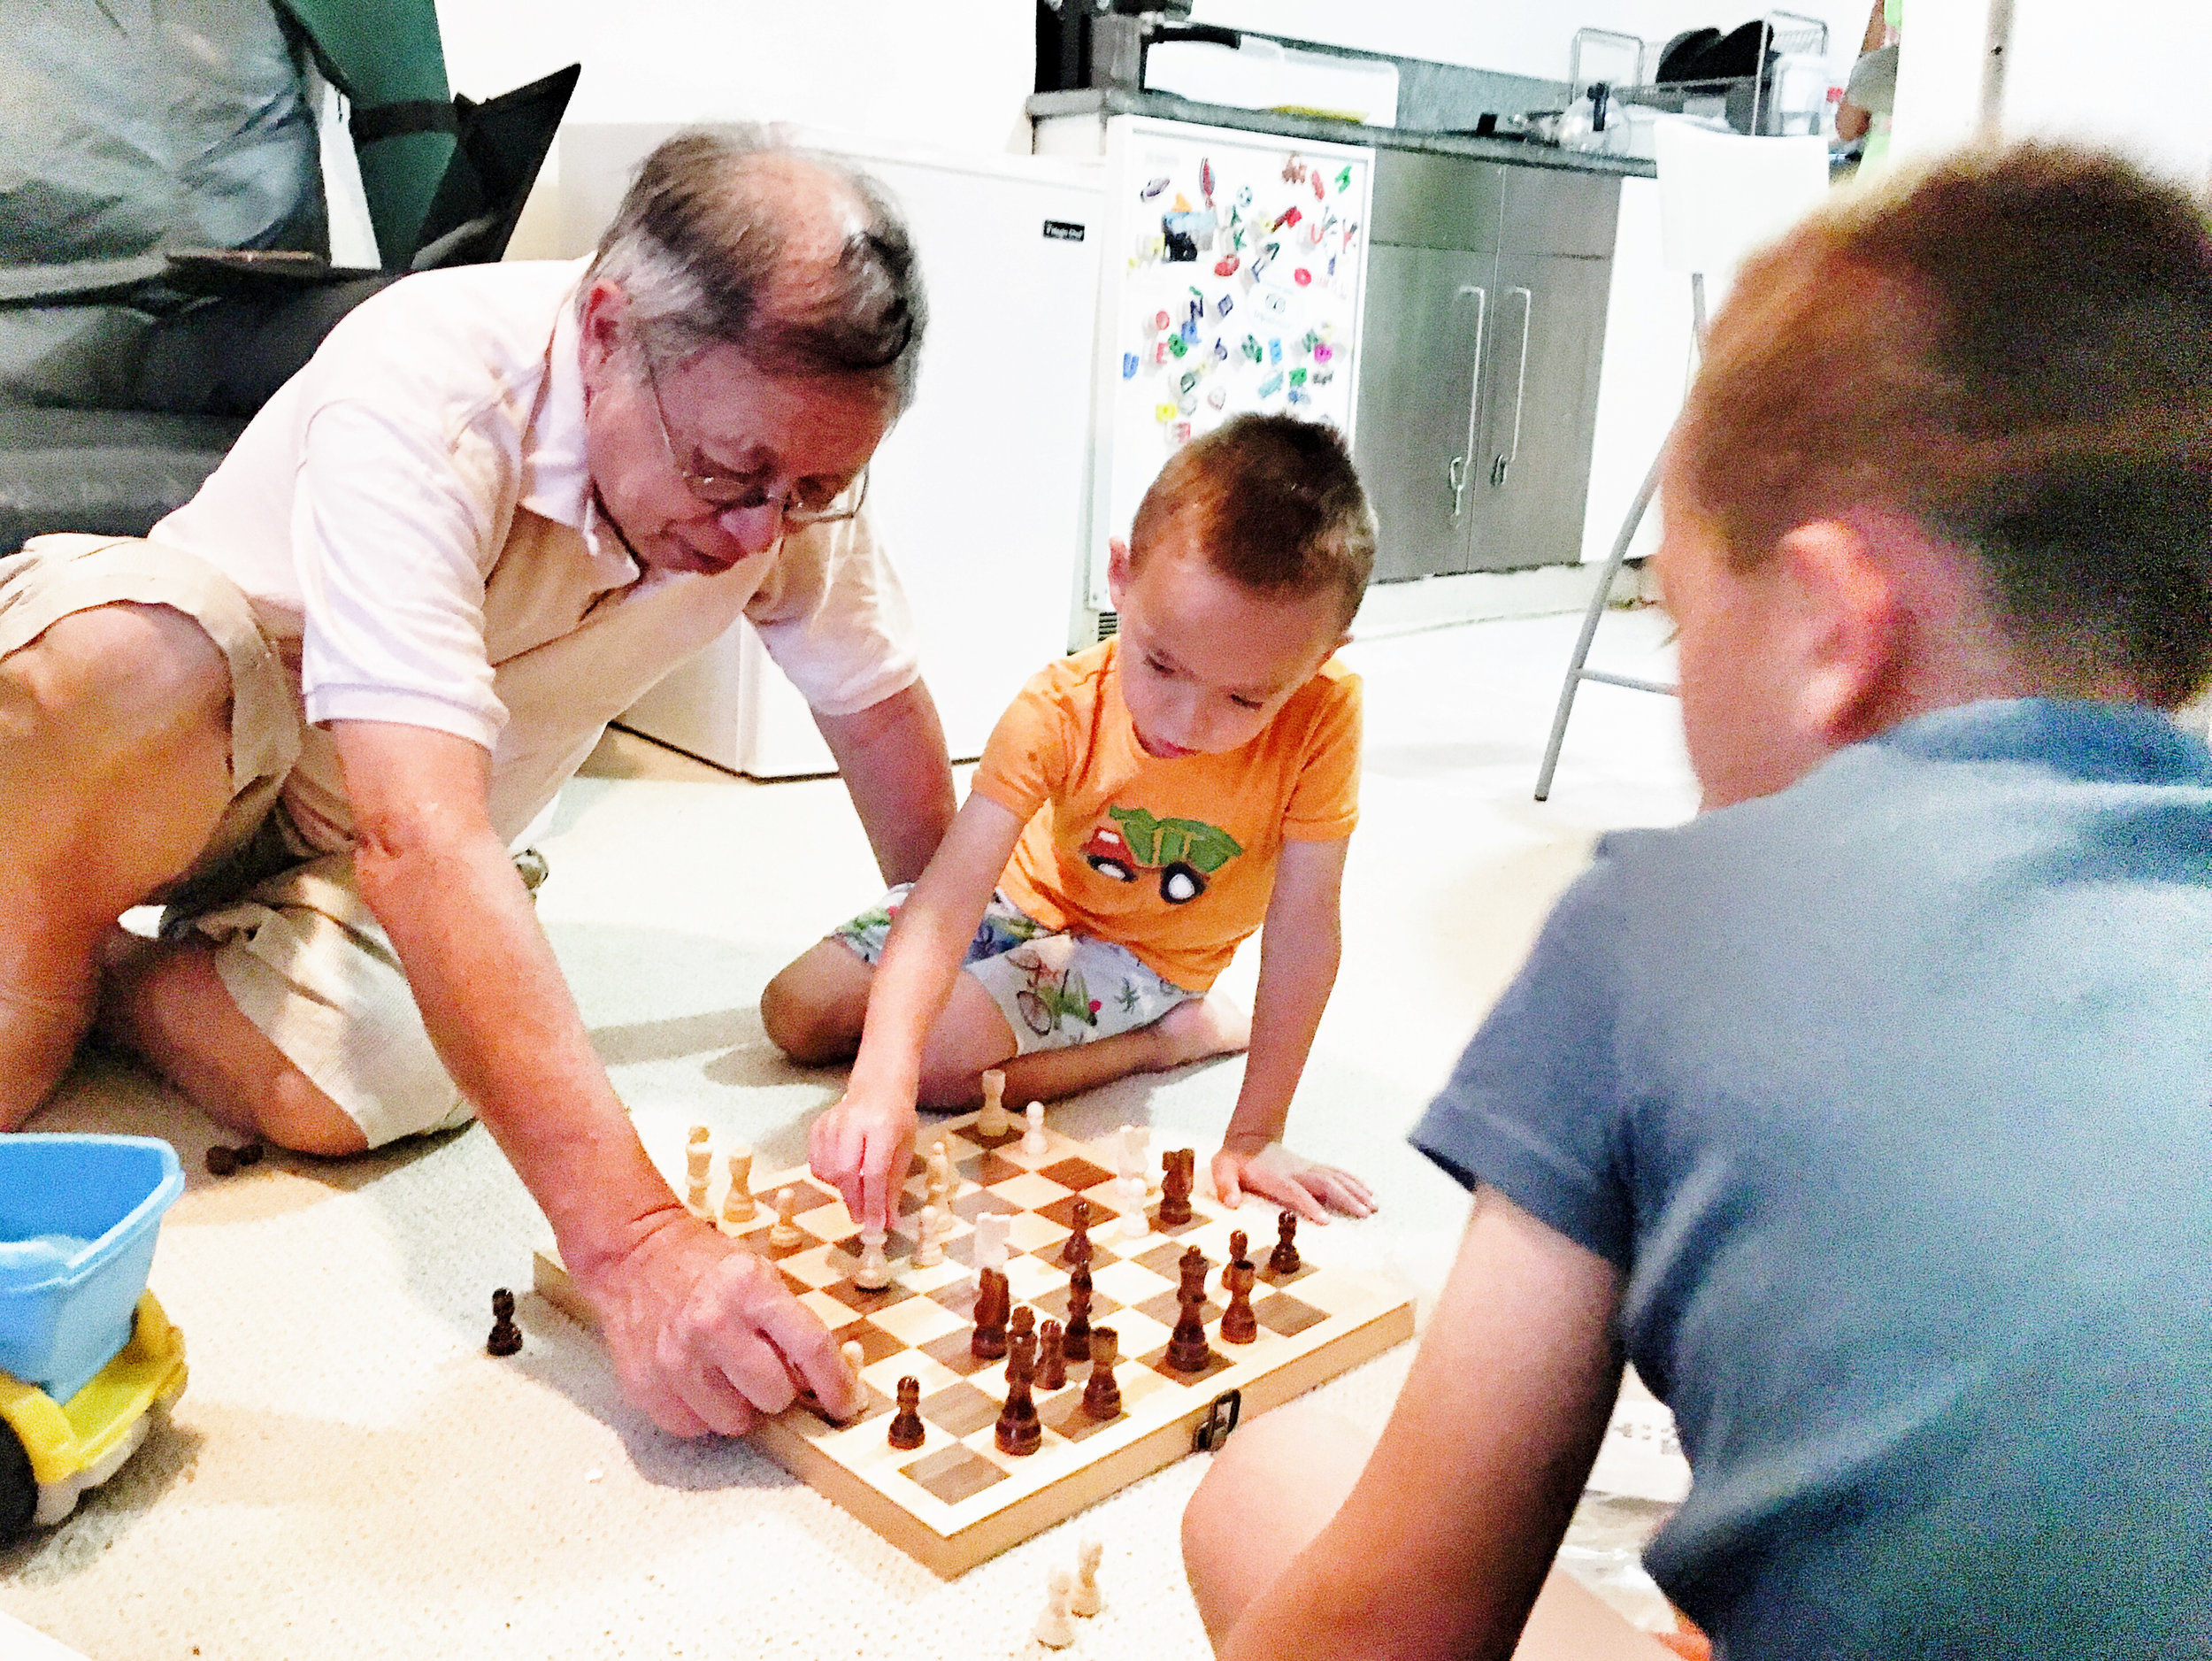 After (Jack giving my dad chess tips!)